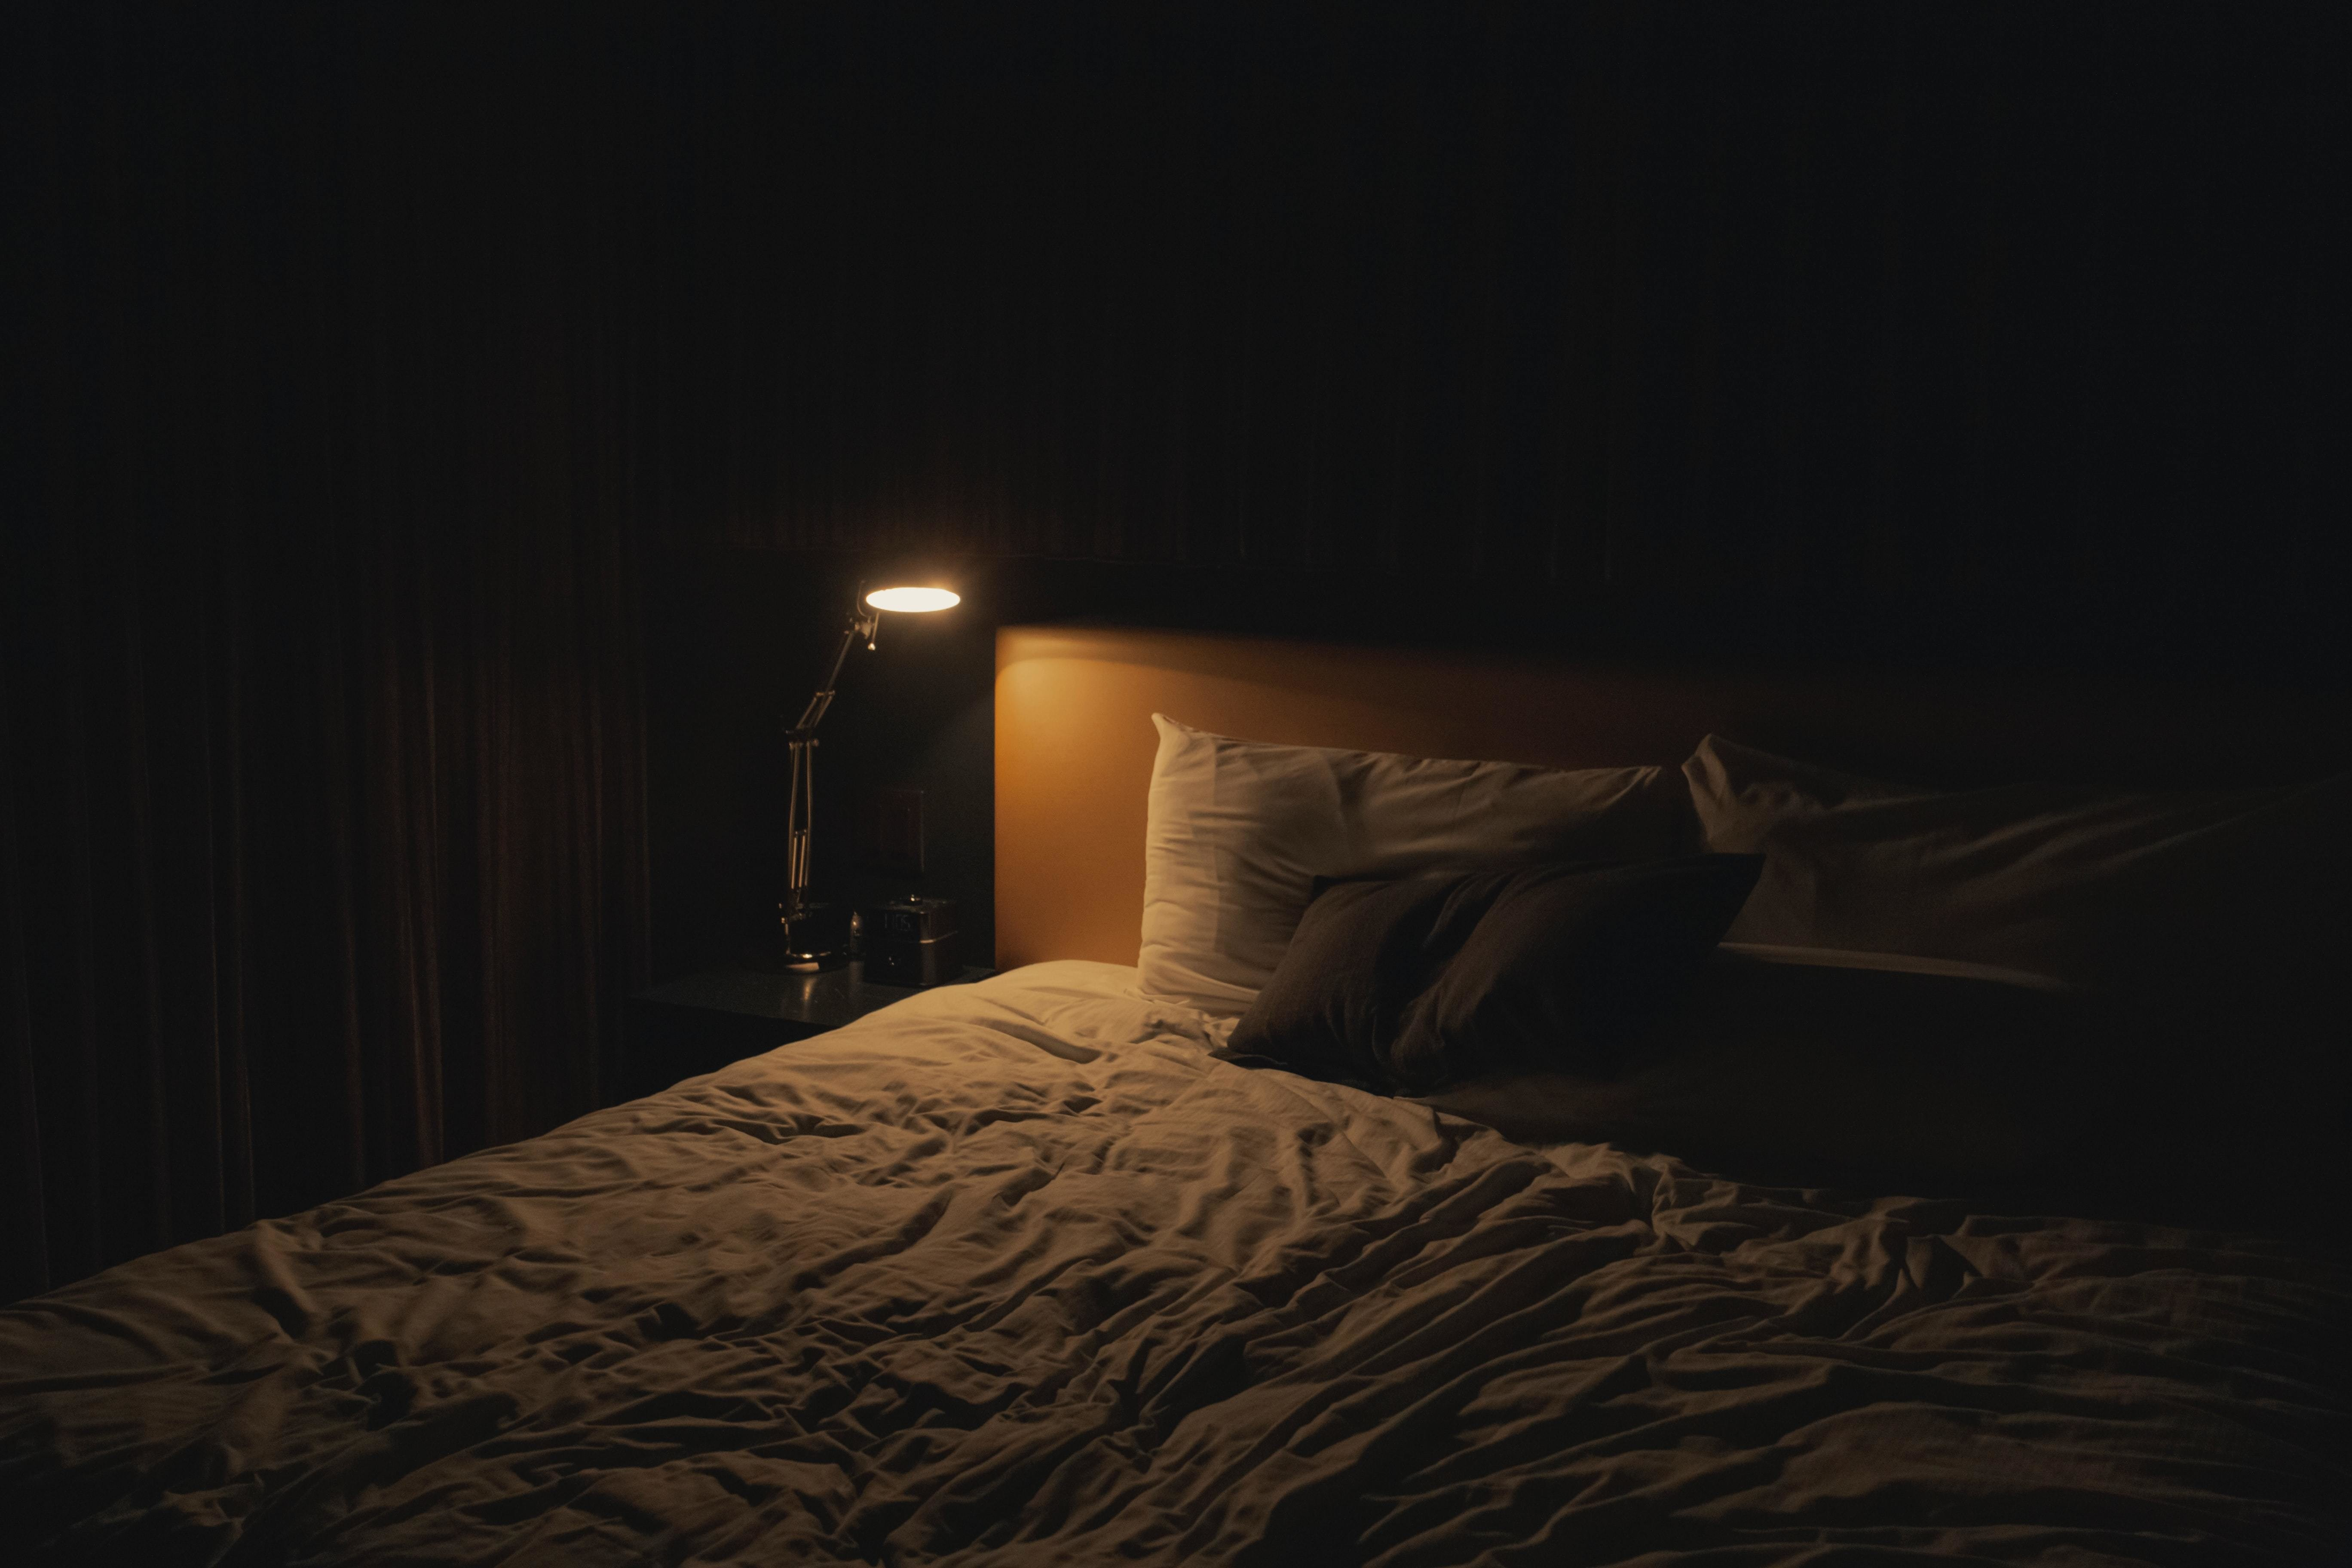 a picture of a bedside table with a lamp on it shining its light over a bed